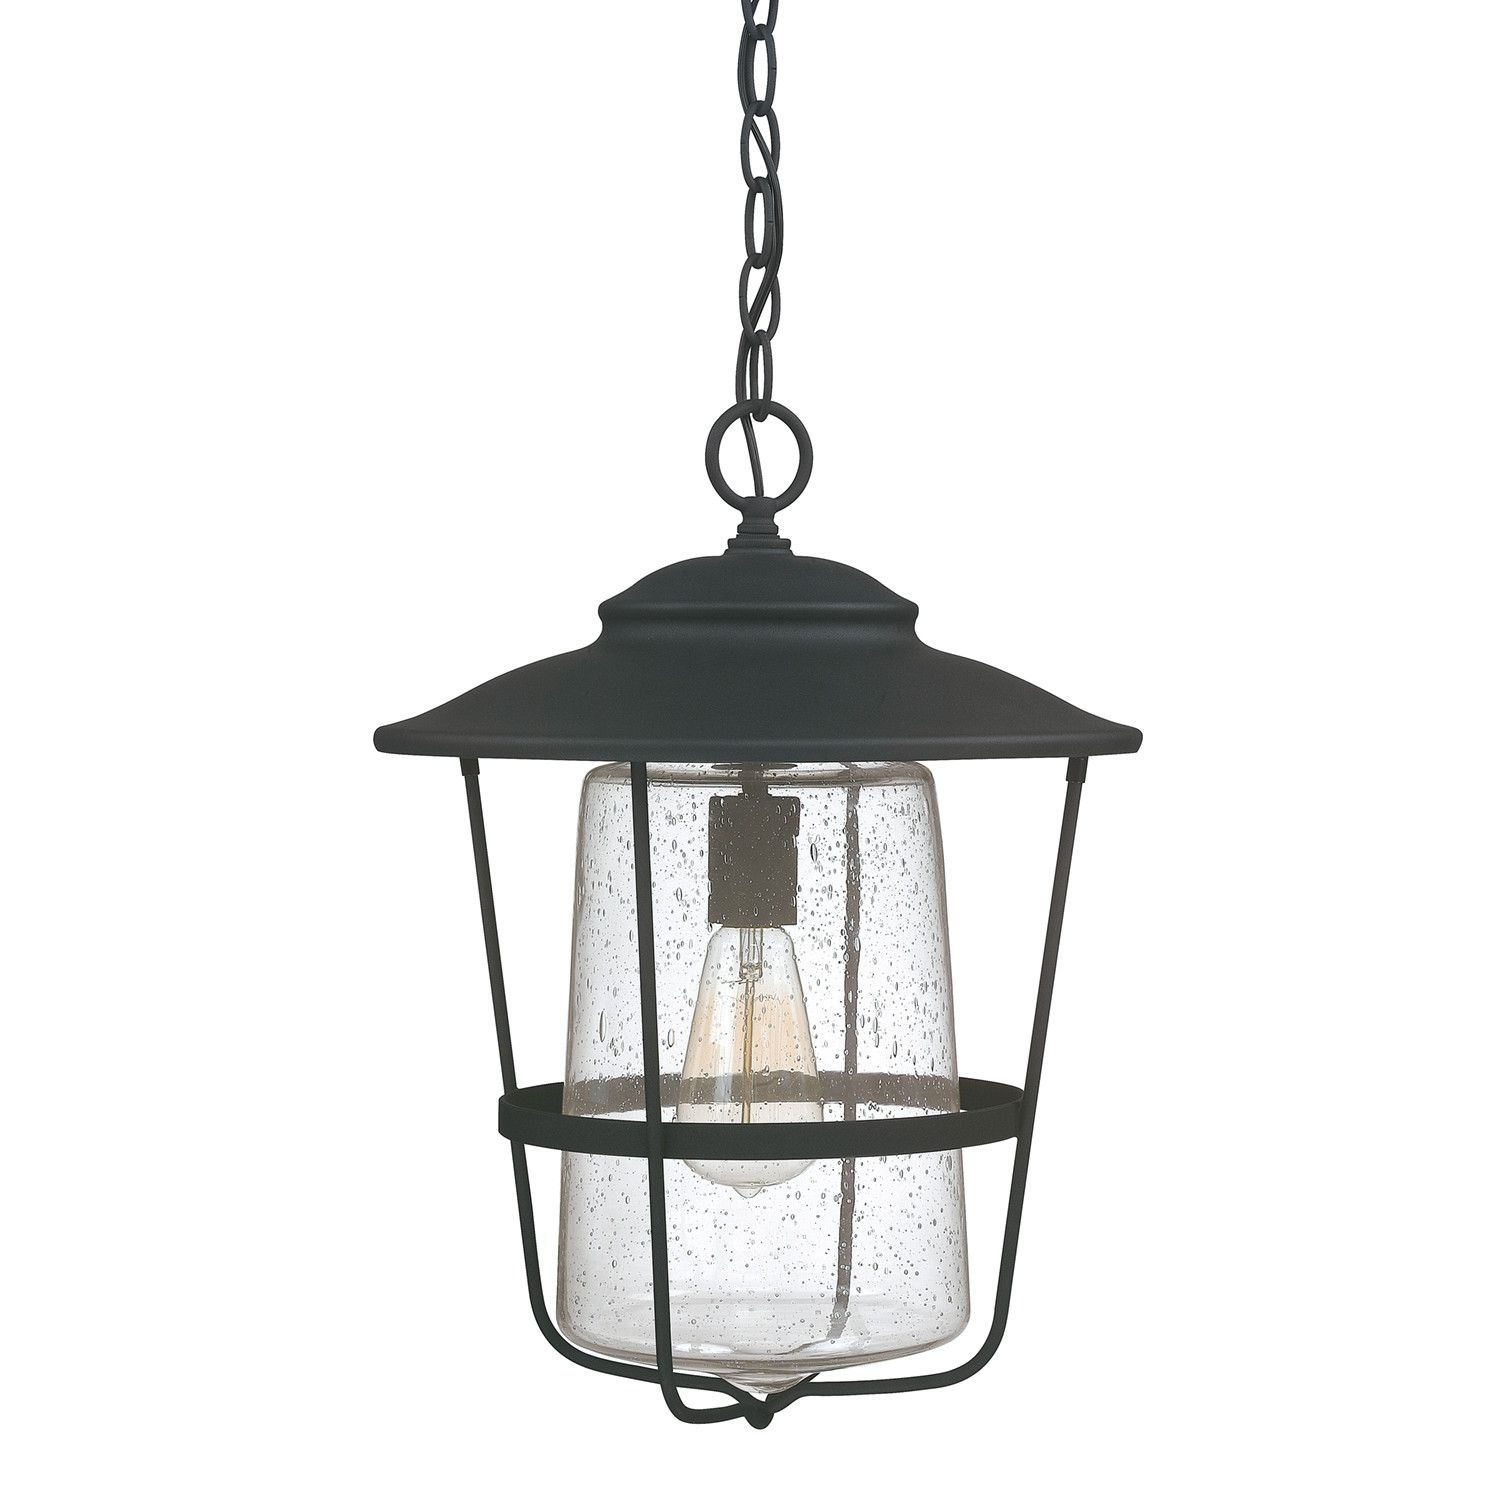 Creekside 1 Light Outdoor Hanging Lantern | Products | Pinterest Pertaining To Wayfair Outdoor Hanging Lighting Fixtures (View 13 of 15)